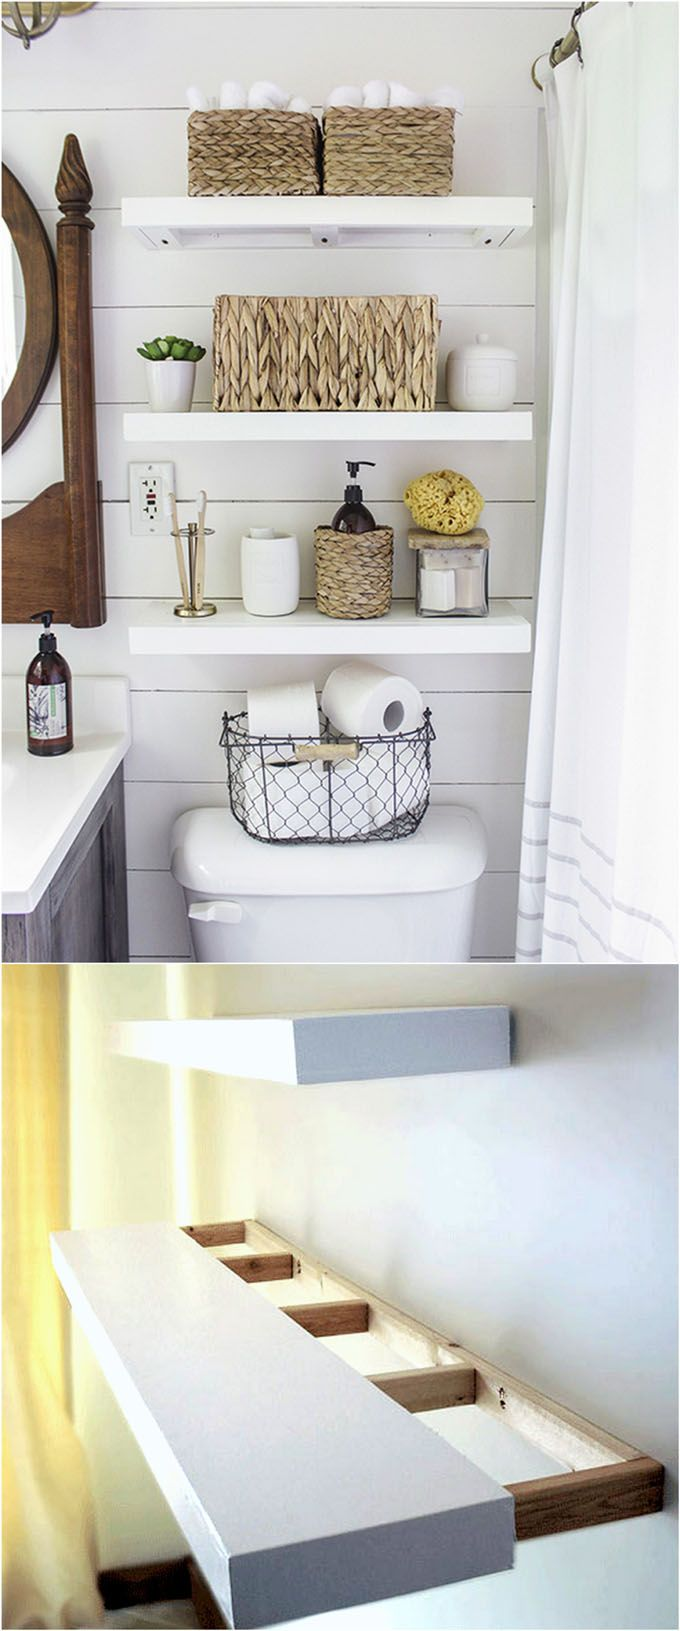 easy and stylish diy floating shelves wall hometalk bathroom tutorials building beautiful check out all the gorgeous brackets supports finishes design inspirations ikea sliding